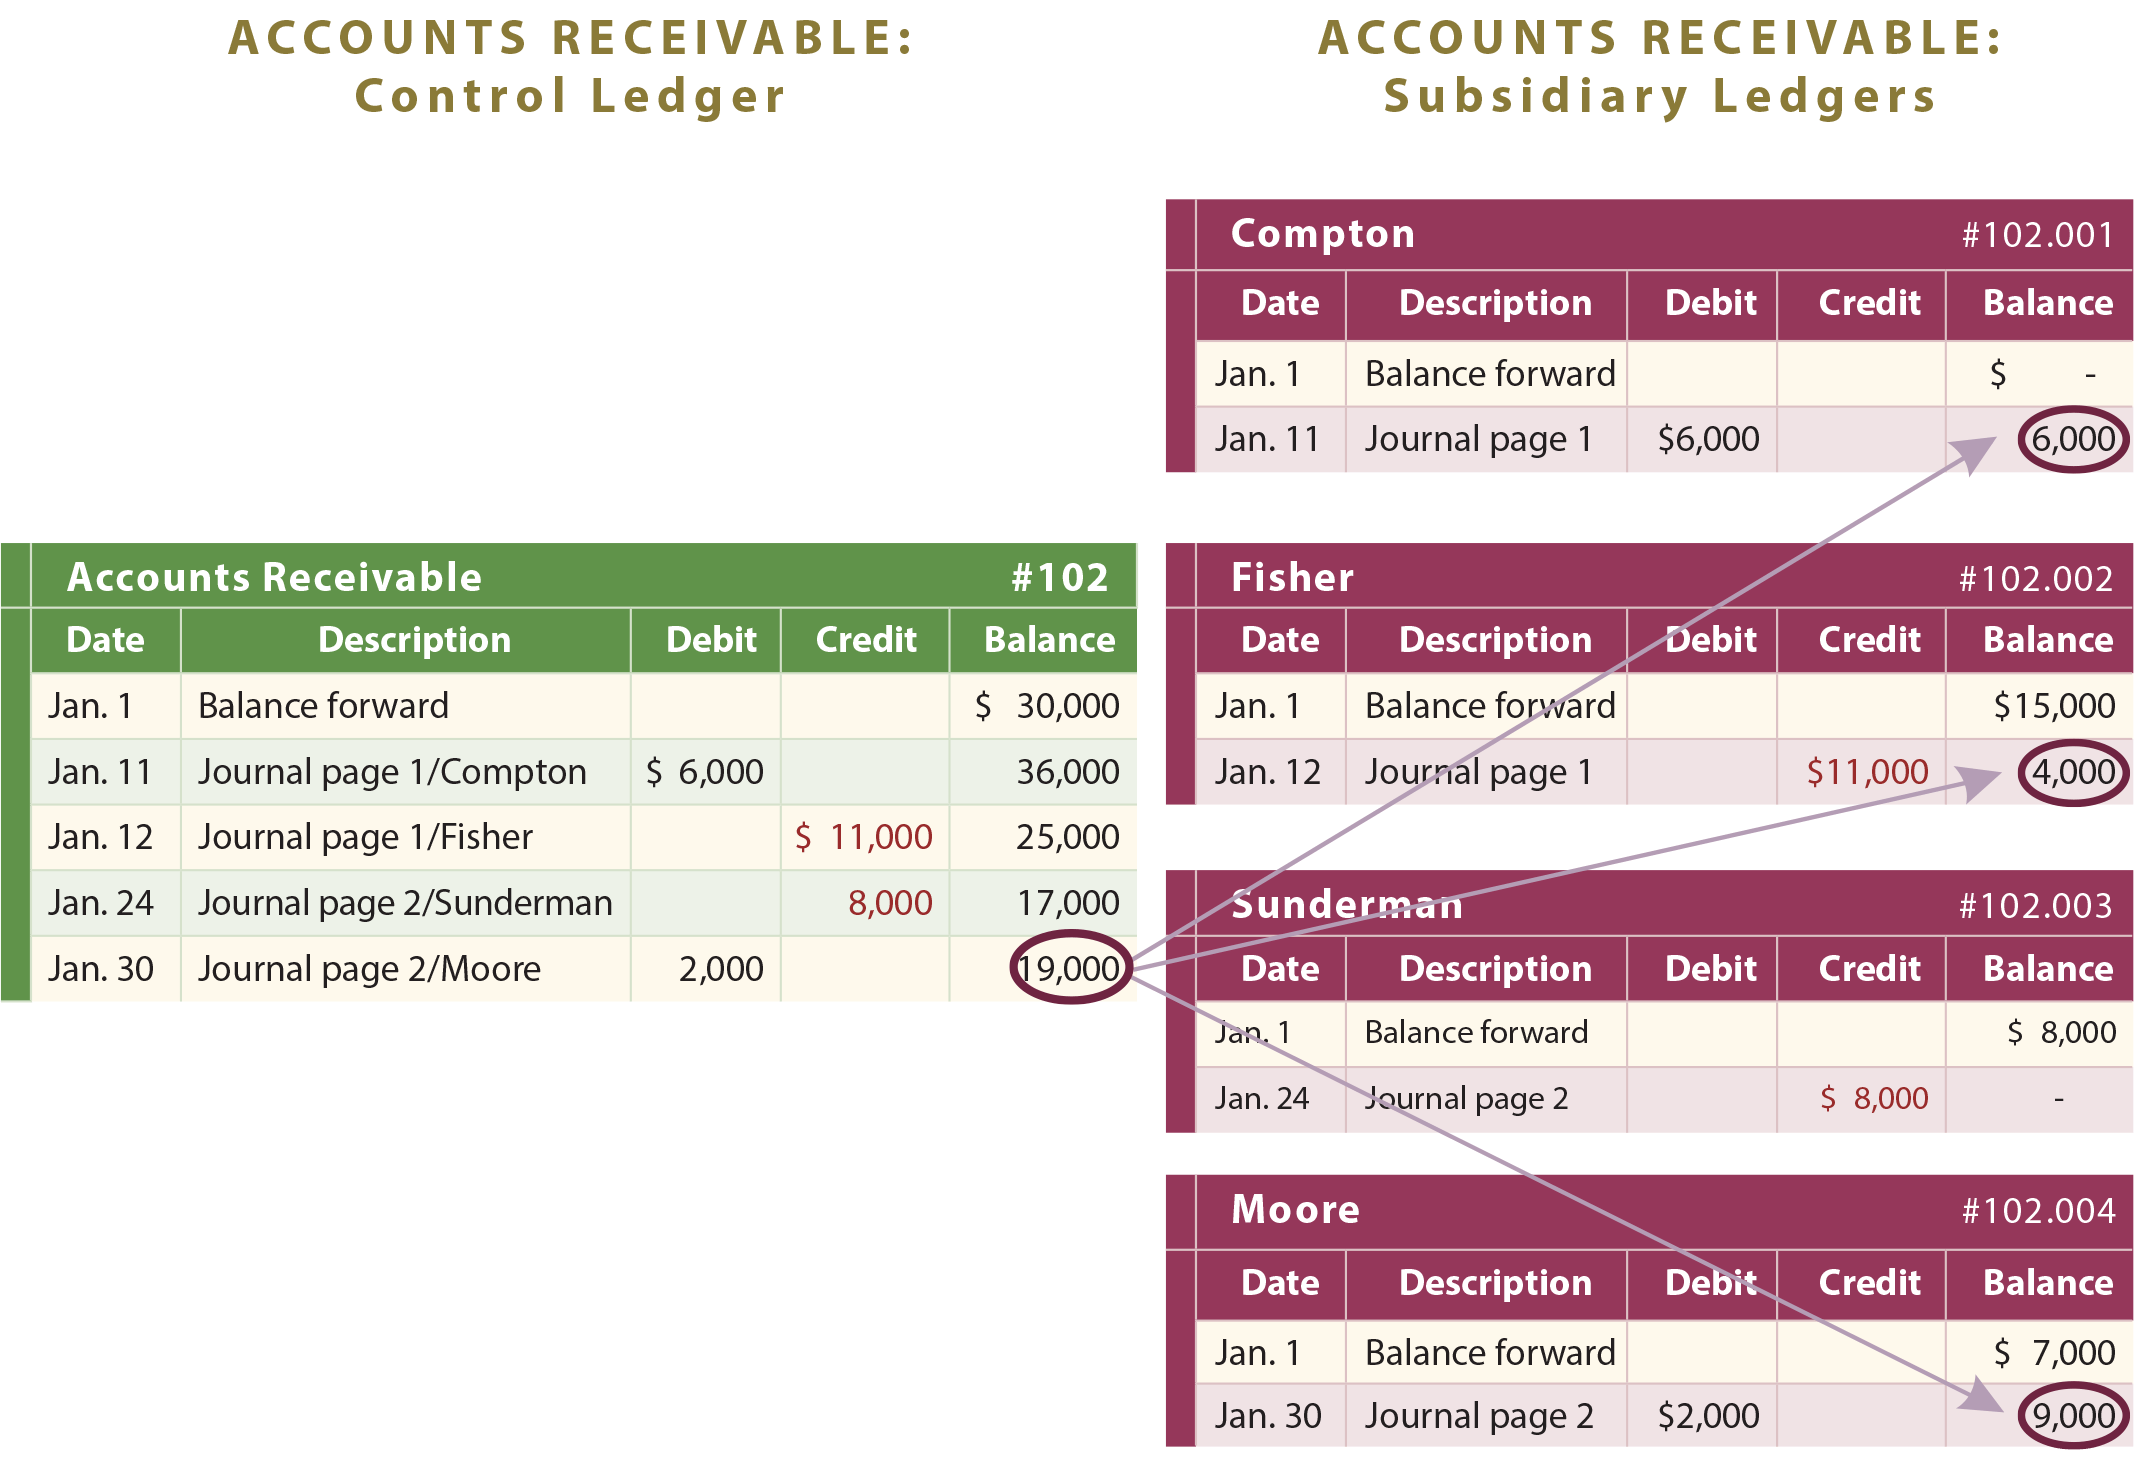 Accounts receivable illustration